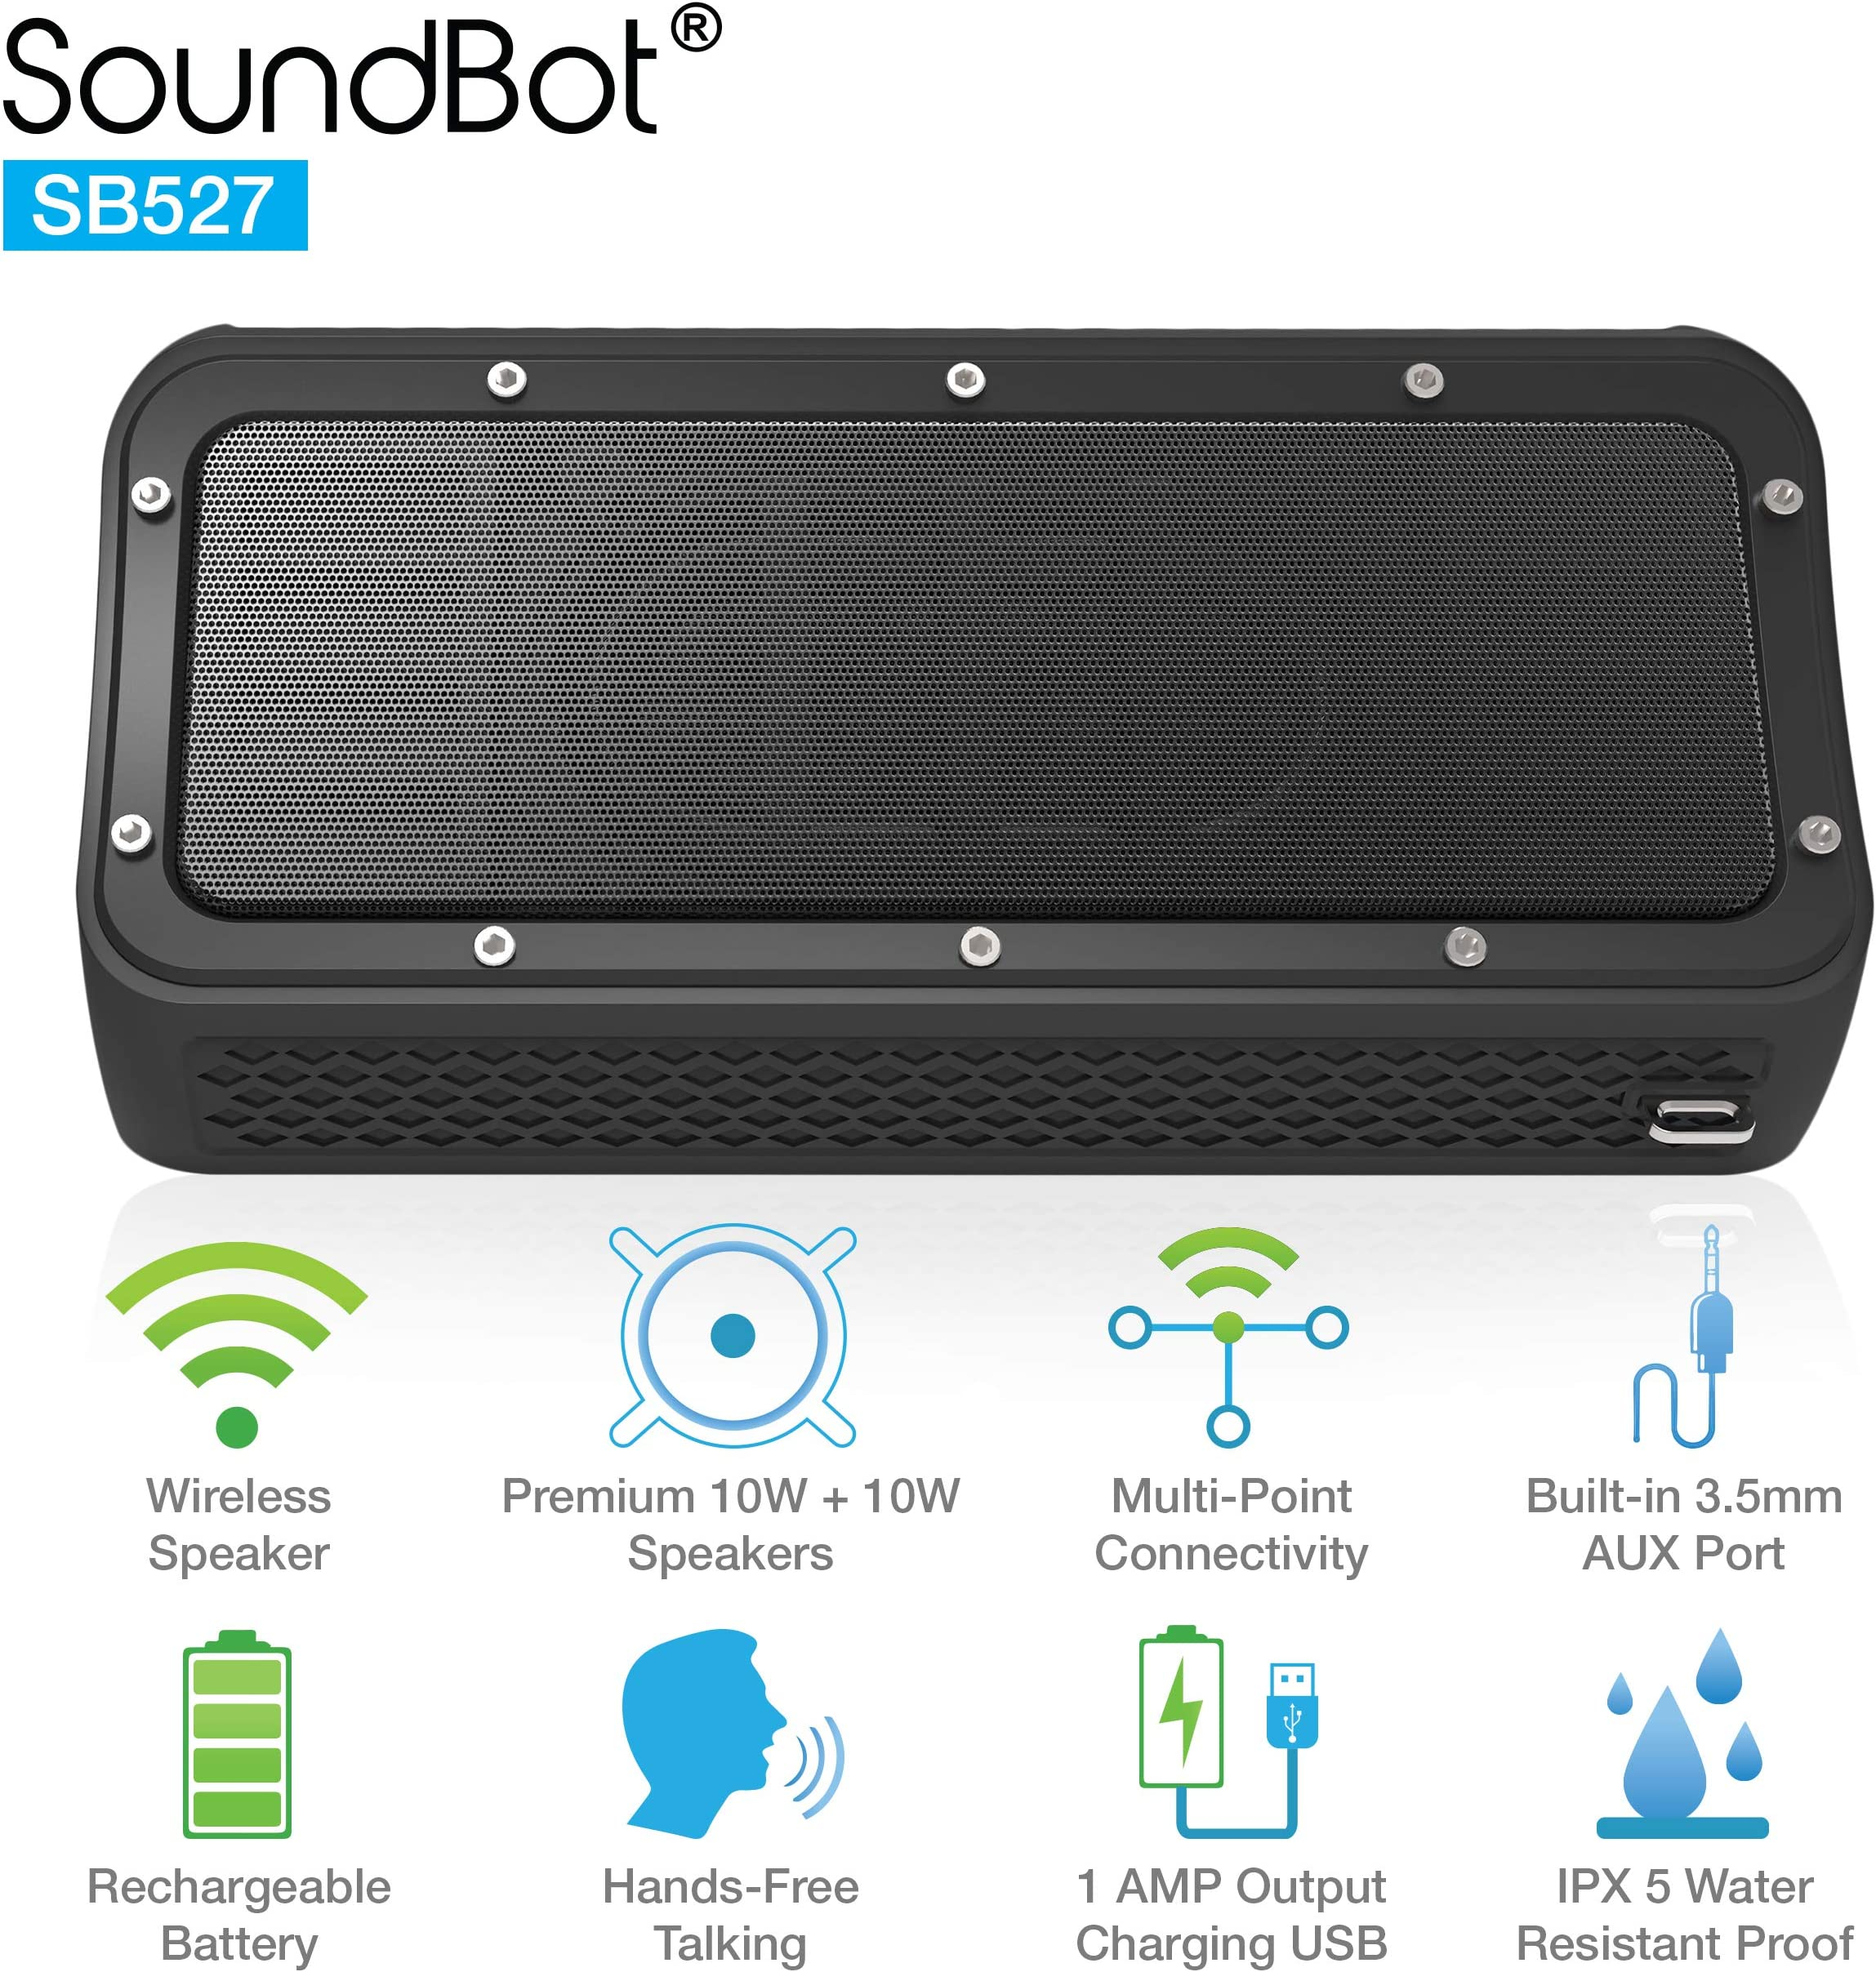 SoundBot SB527 Bluetooth 4.2 Wireless 20W Speaker Water & Shock Resistant for 12Hrs Music Streaming, HandsFree Calling